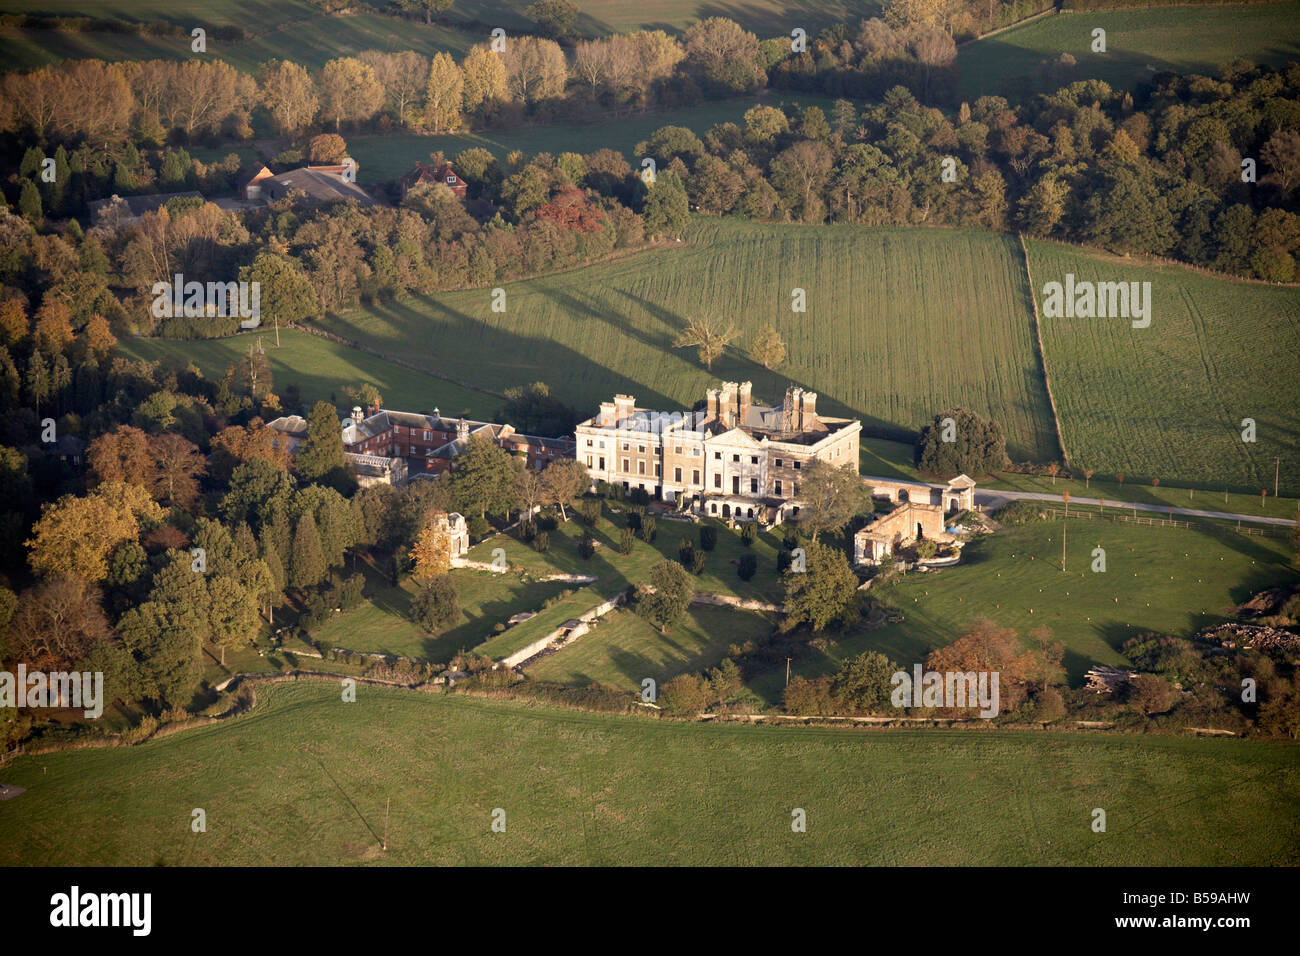 Aerial view north east of Copped Hall Rod Stewart s Epping Estate and gardens country fields trees Epping Forest - Stock Image